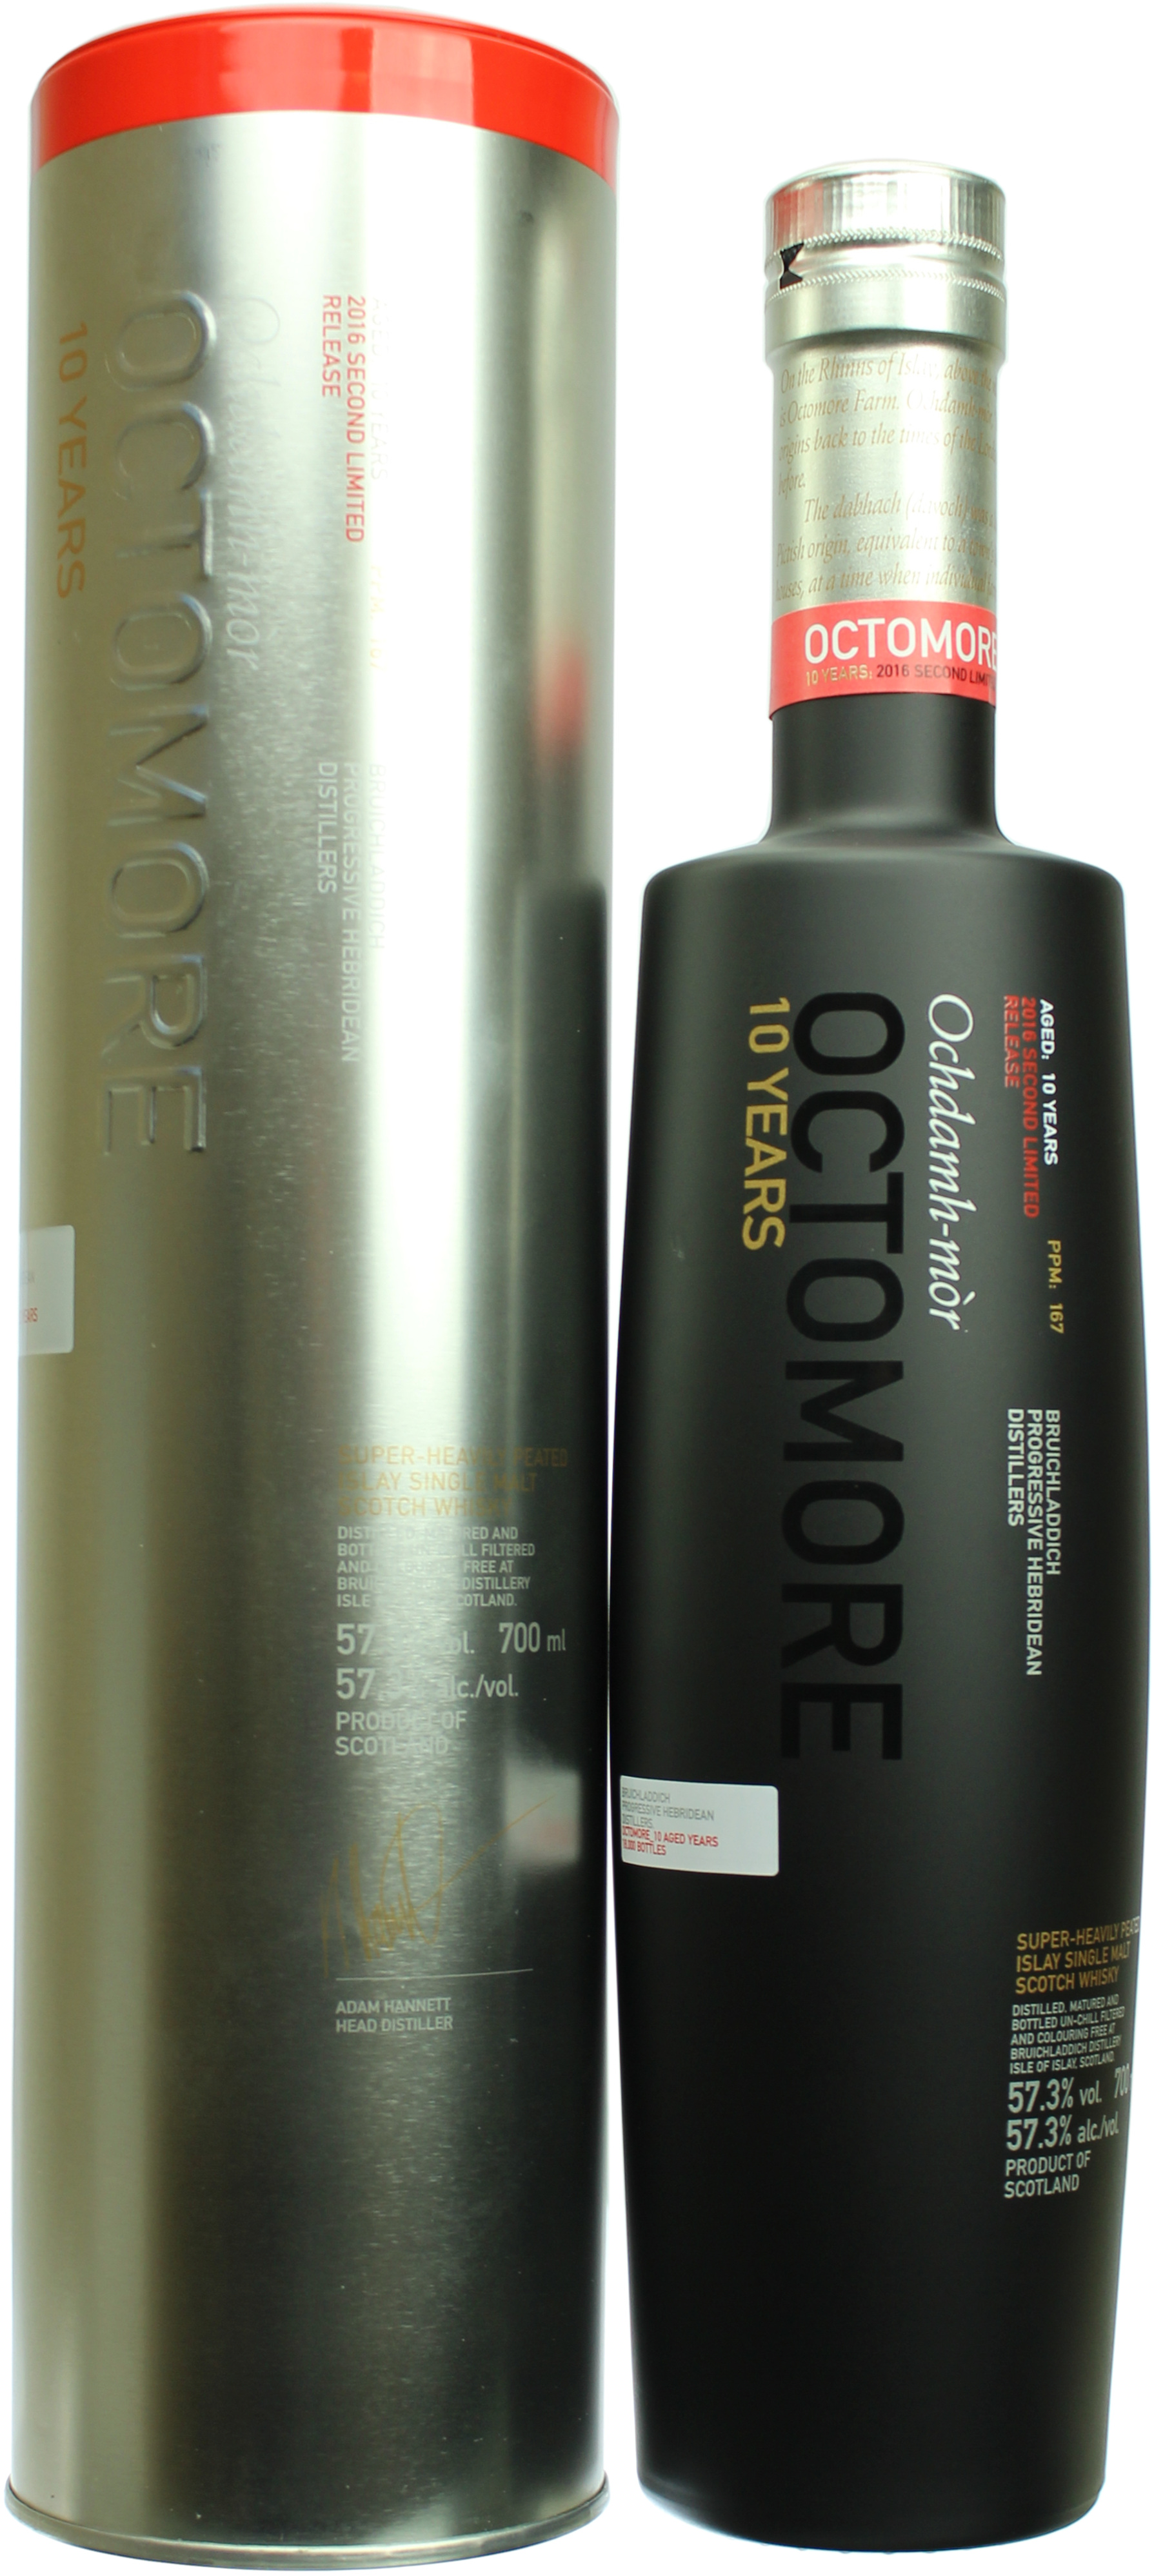 Octomore2016 2ndEdition